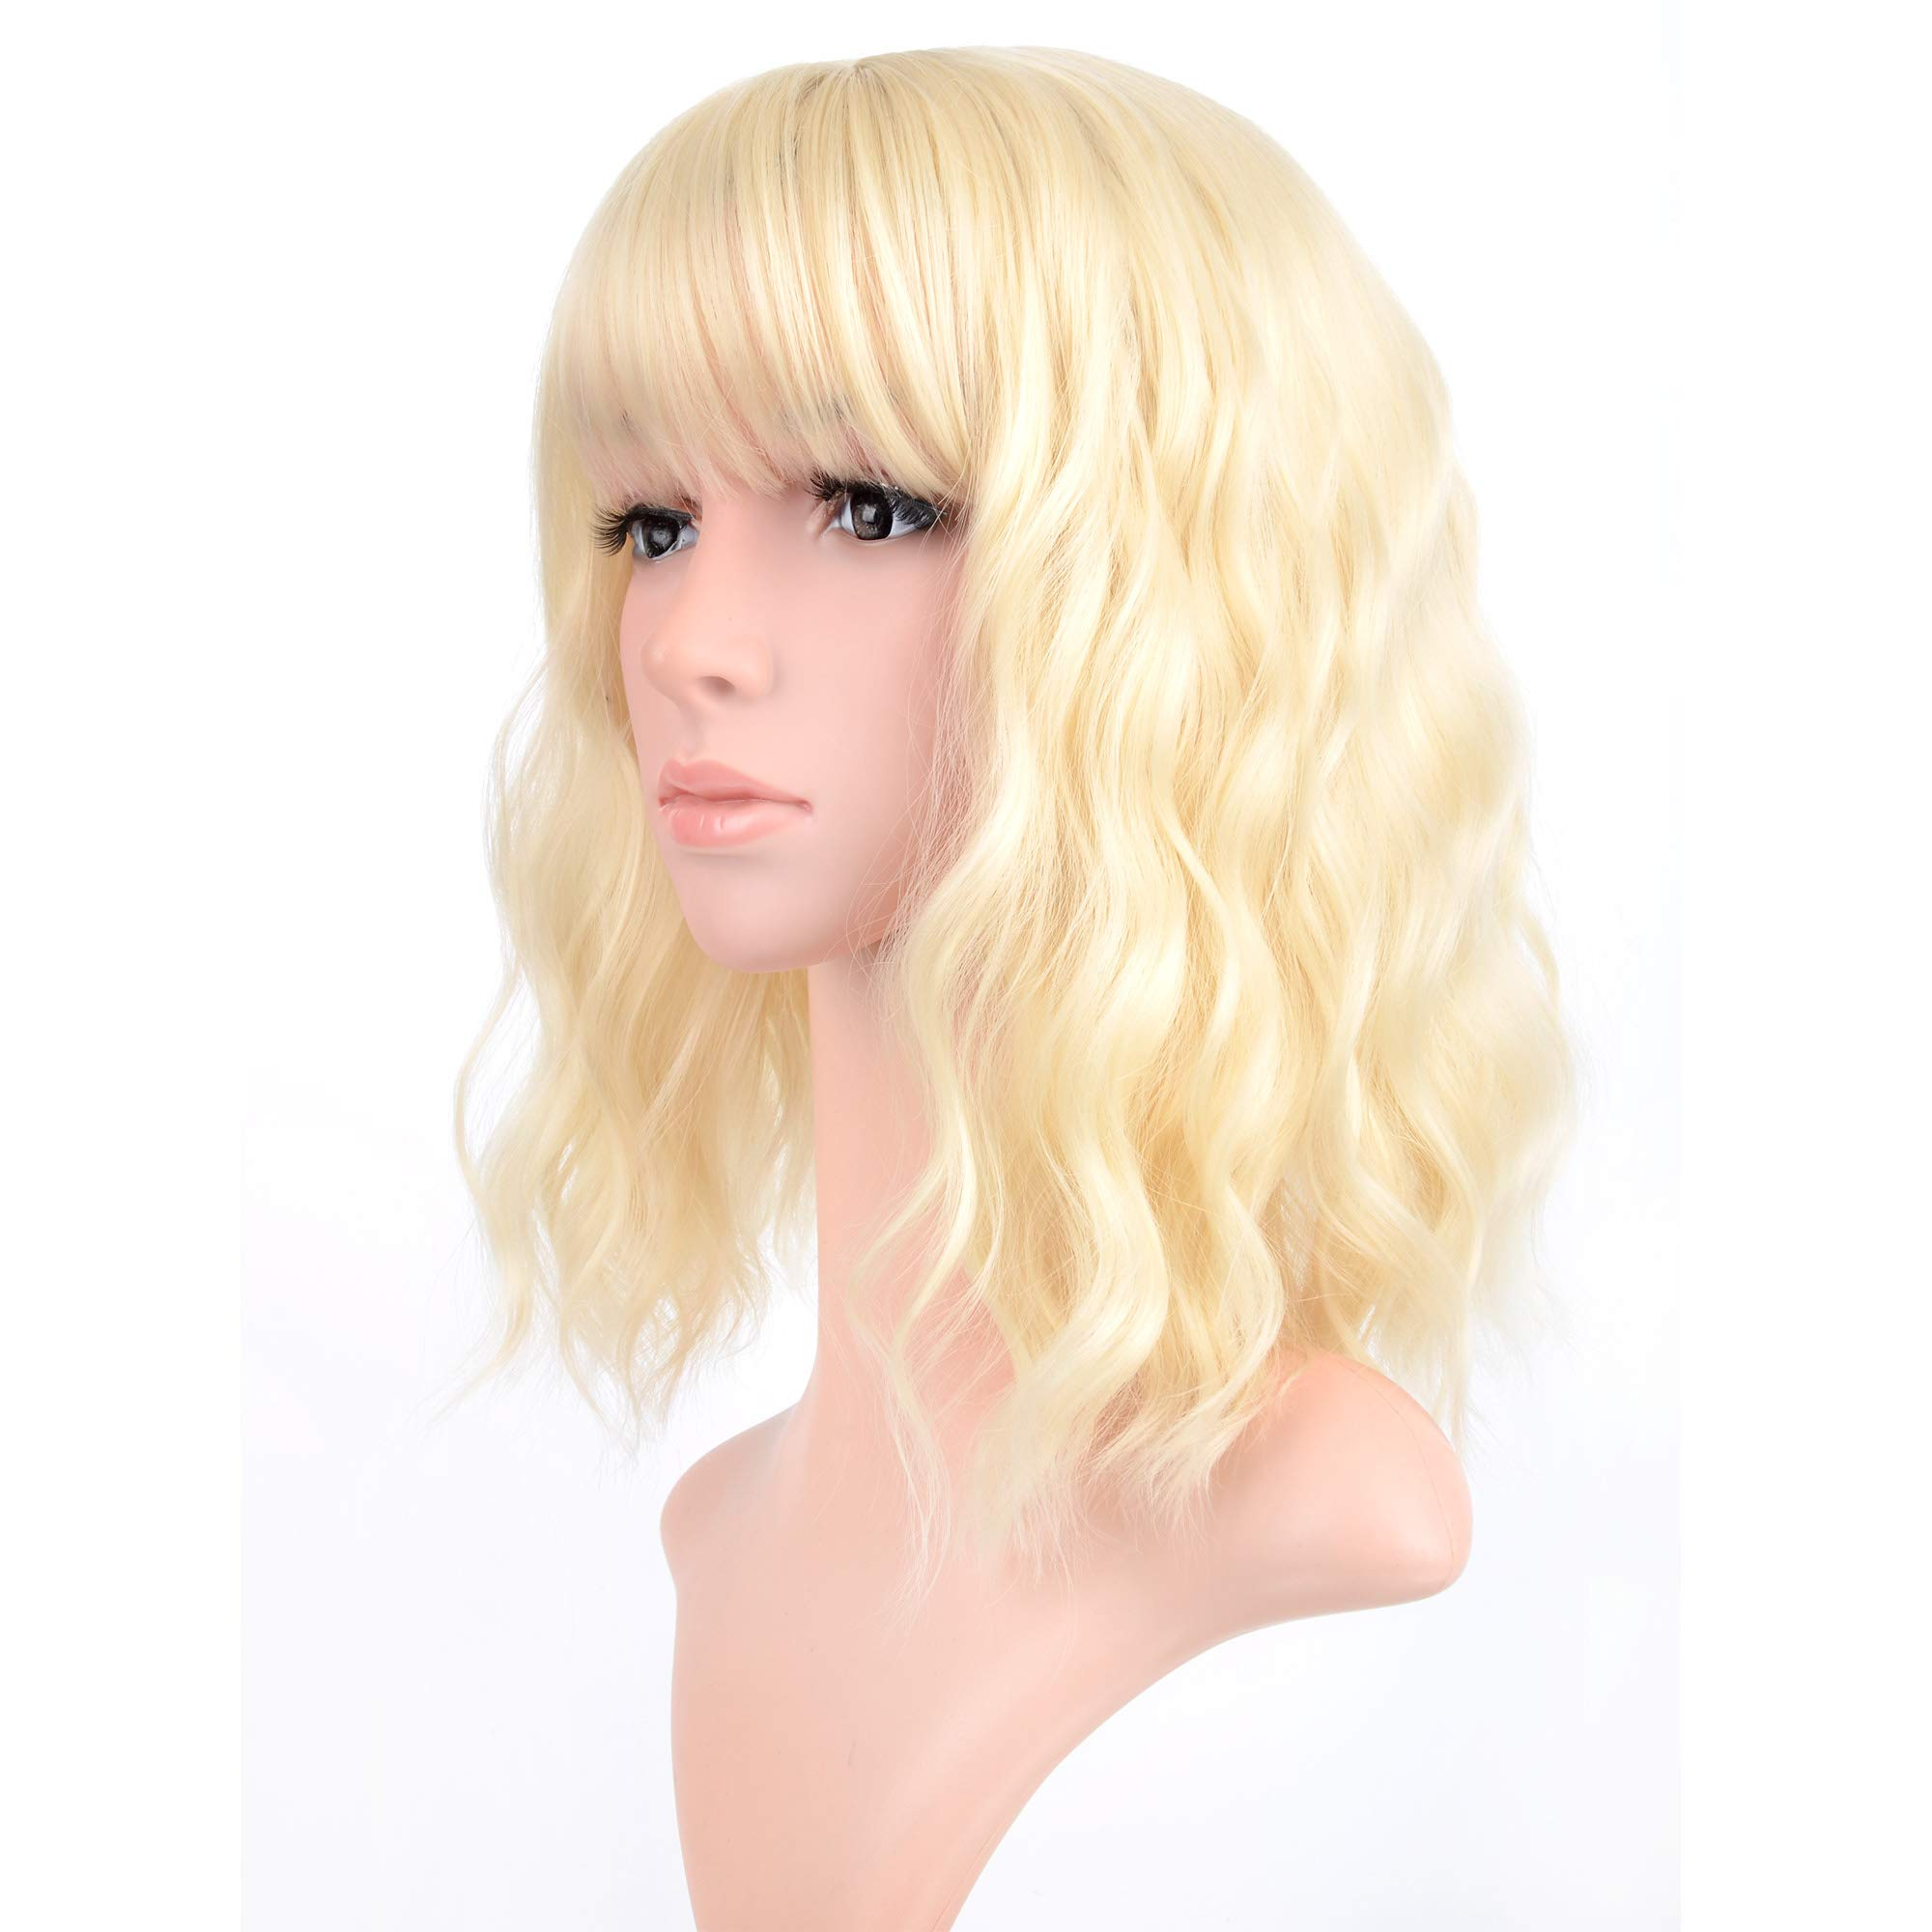 Vckovcko Blonde Pastel Wavy Wig With Air Bangs Women Short Wavy Light Blonde Wigs Synthetic Wig For Cosplay Party Bob Buy Online In India At Desertcart